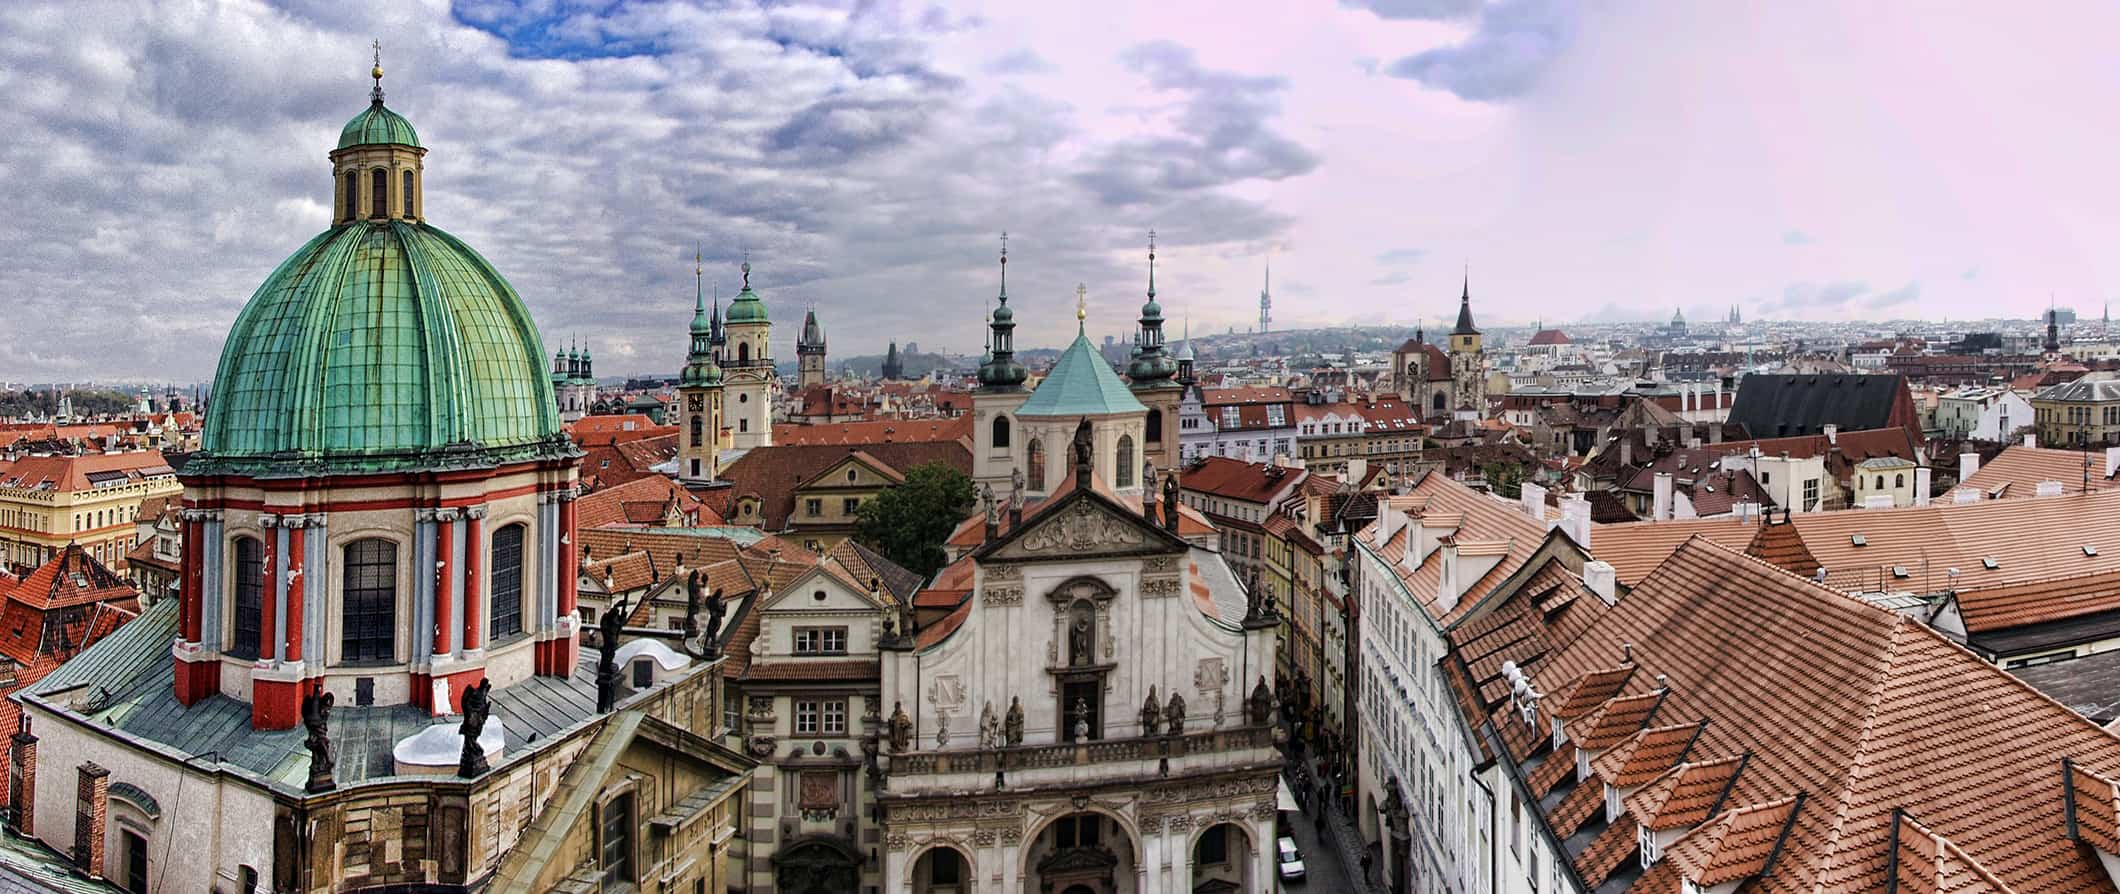 Backpacking Europe on a Budget: The City of Prague